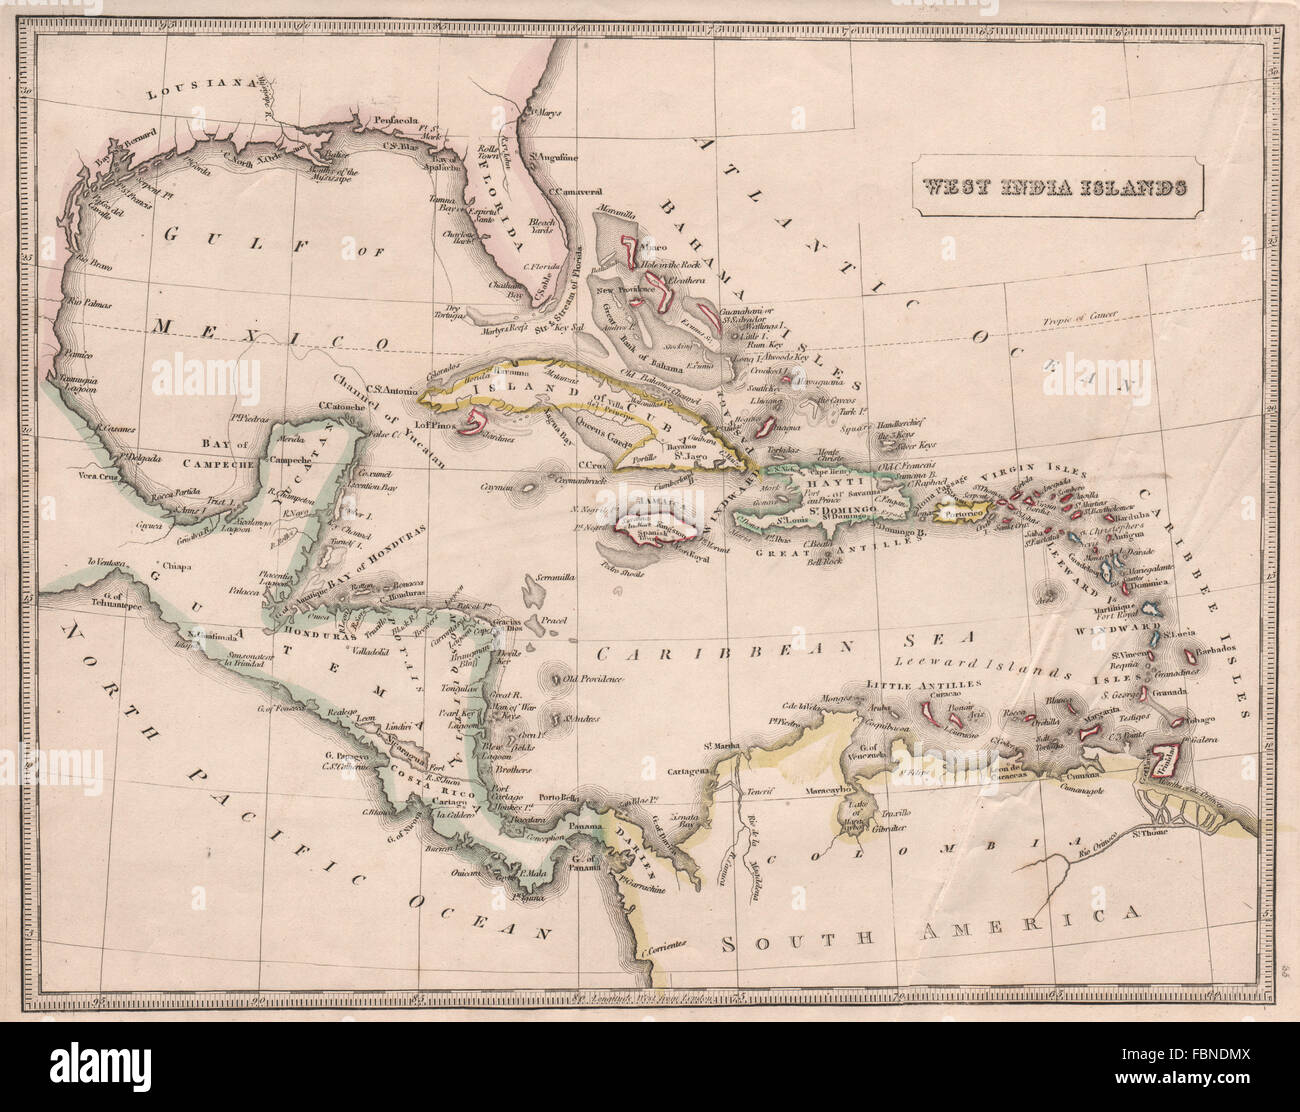 Mexico Map 1850.West India Islands Caribbean Antilles Gulf Of Mexico Johnson 1850